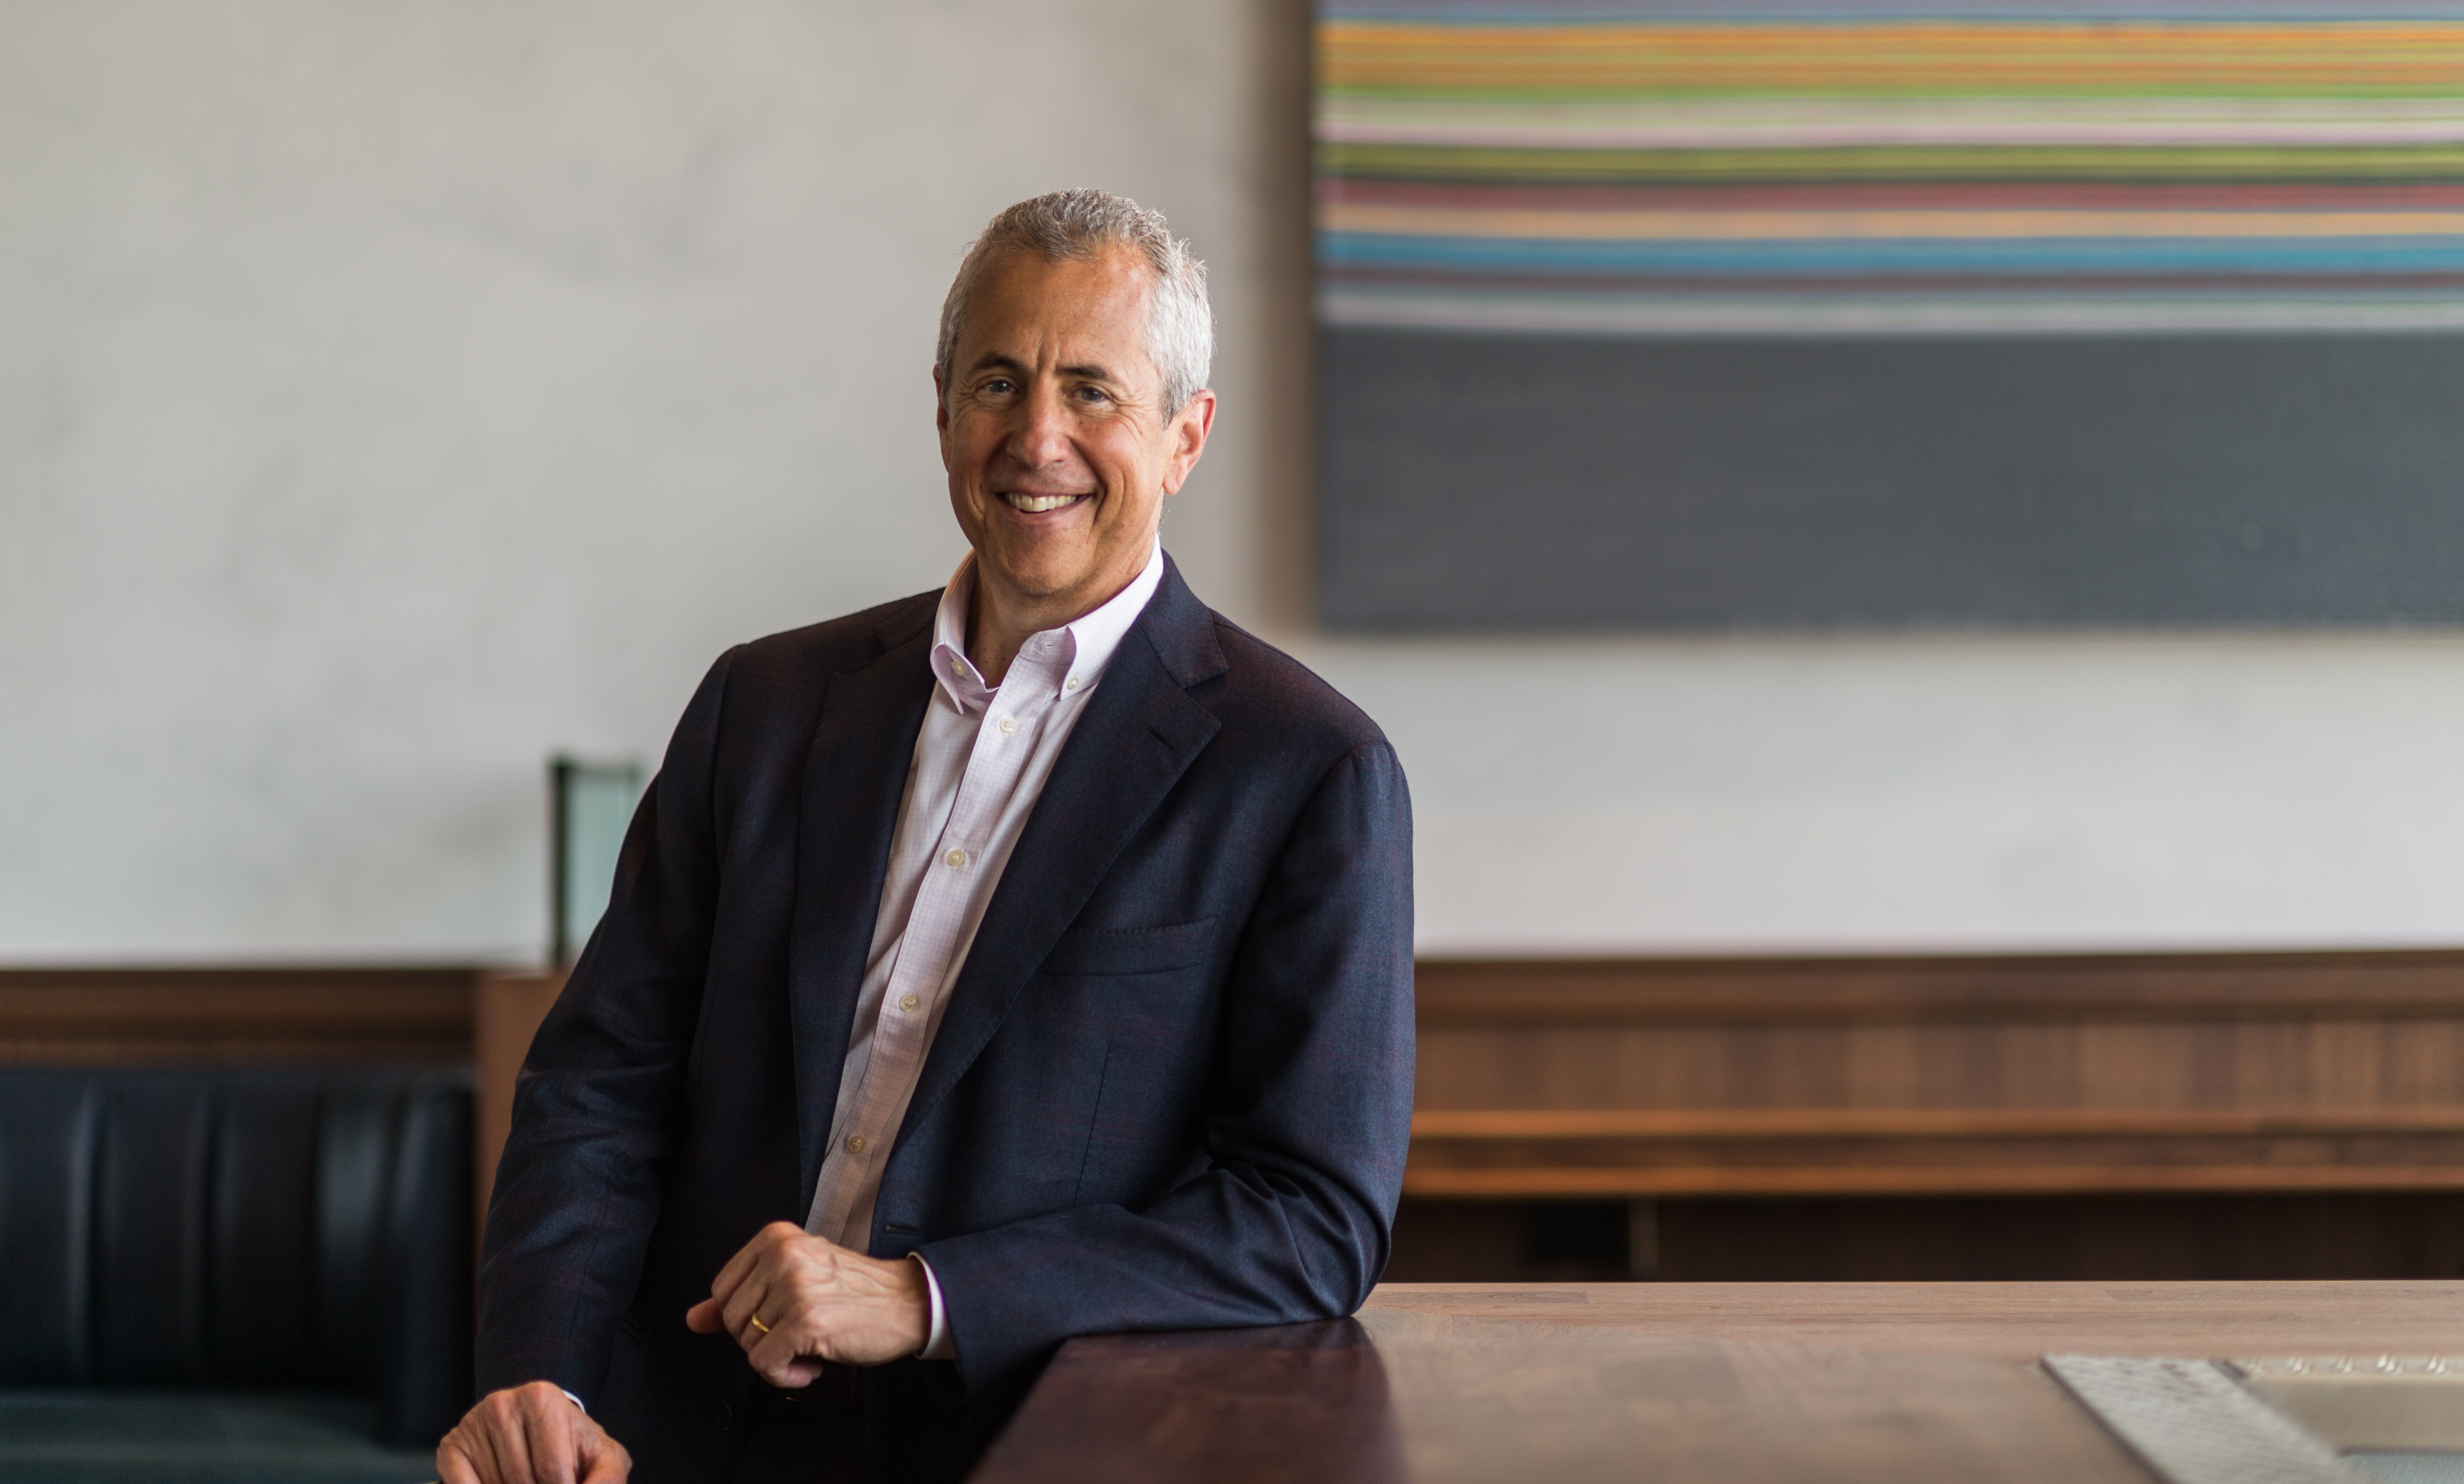 Danny Meyer - owner of  Union Square Hospitality Group